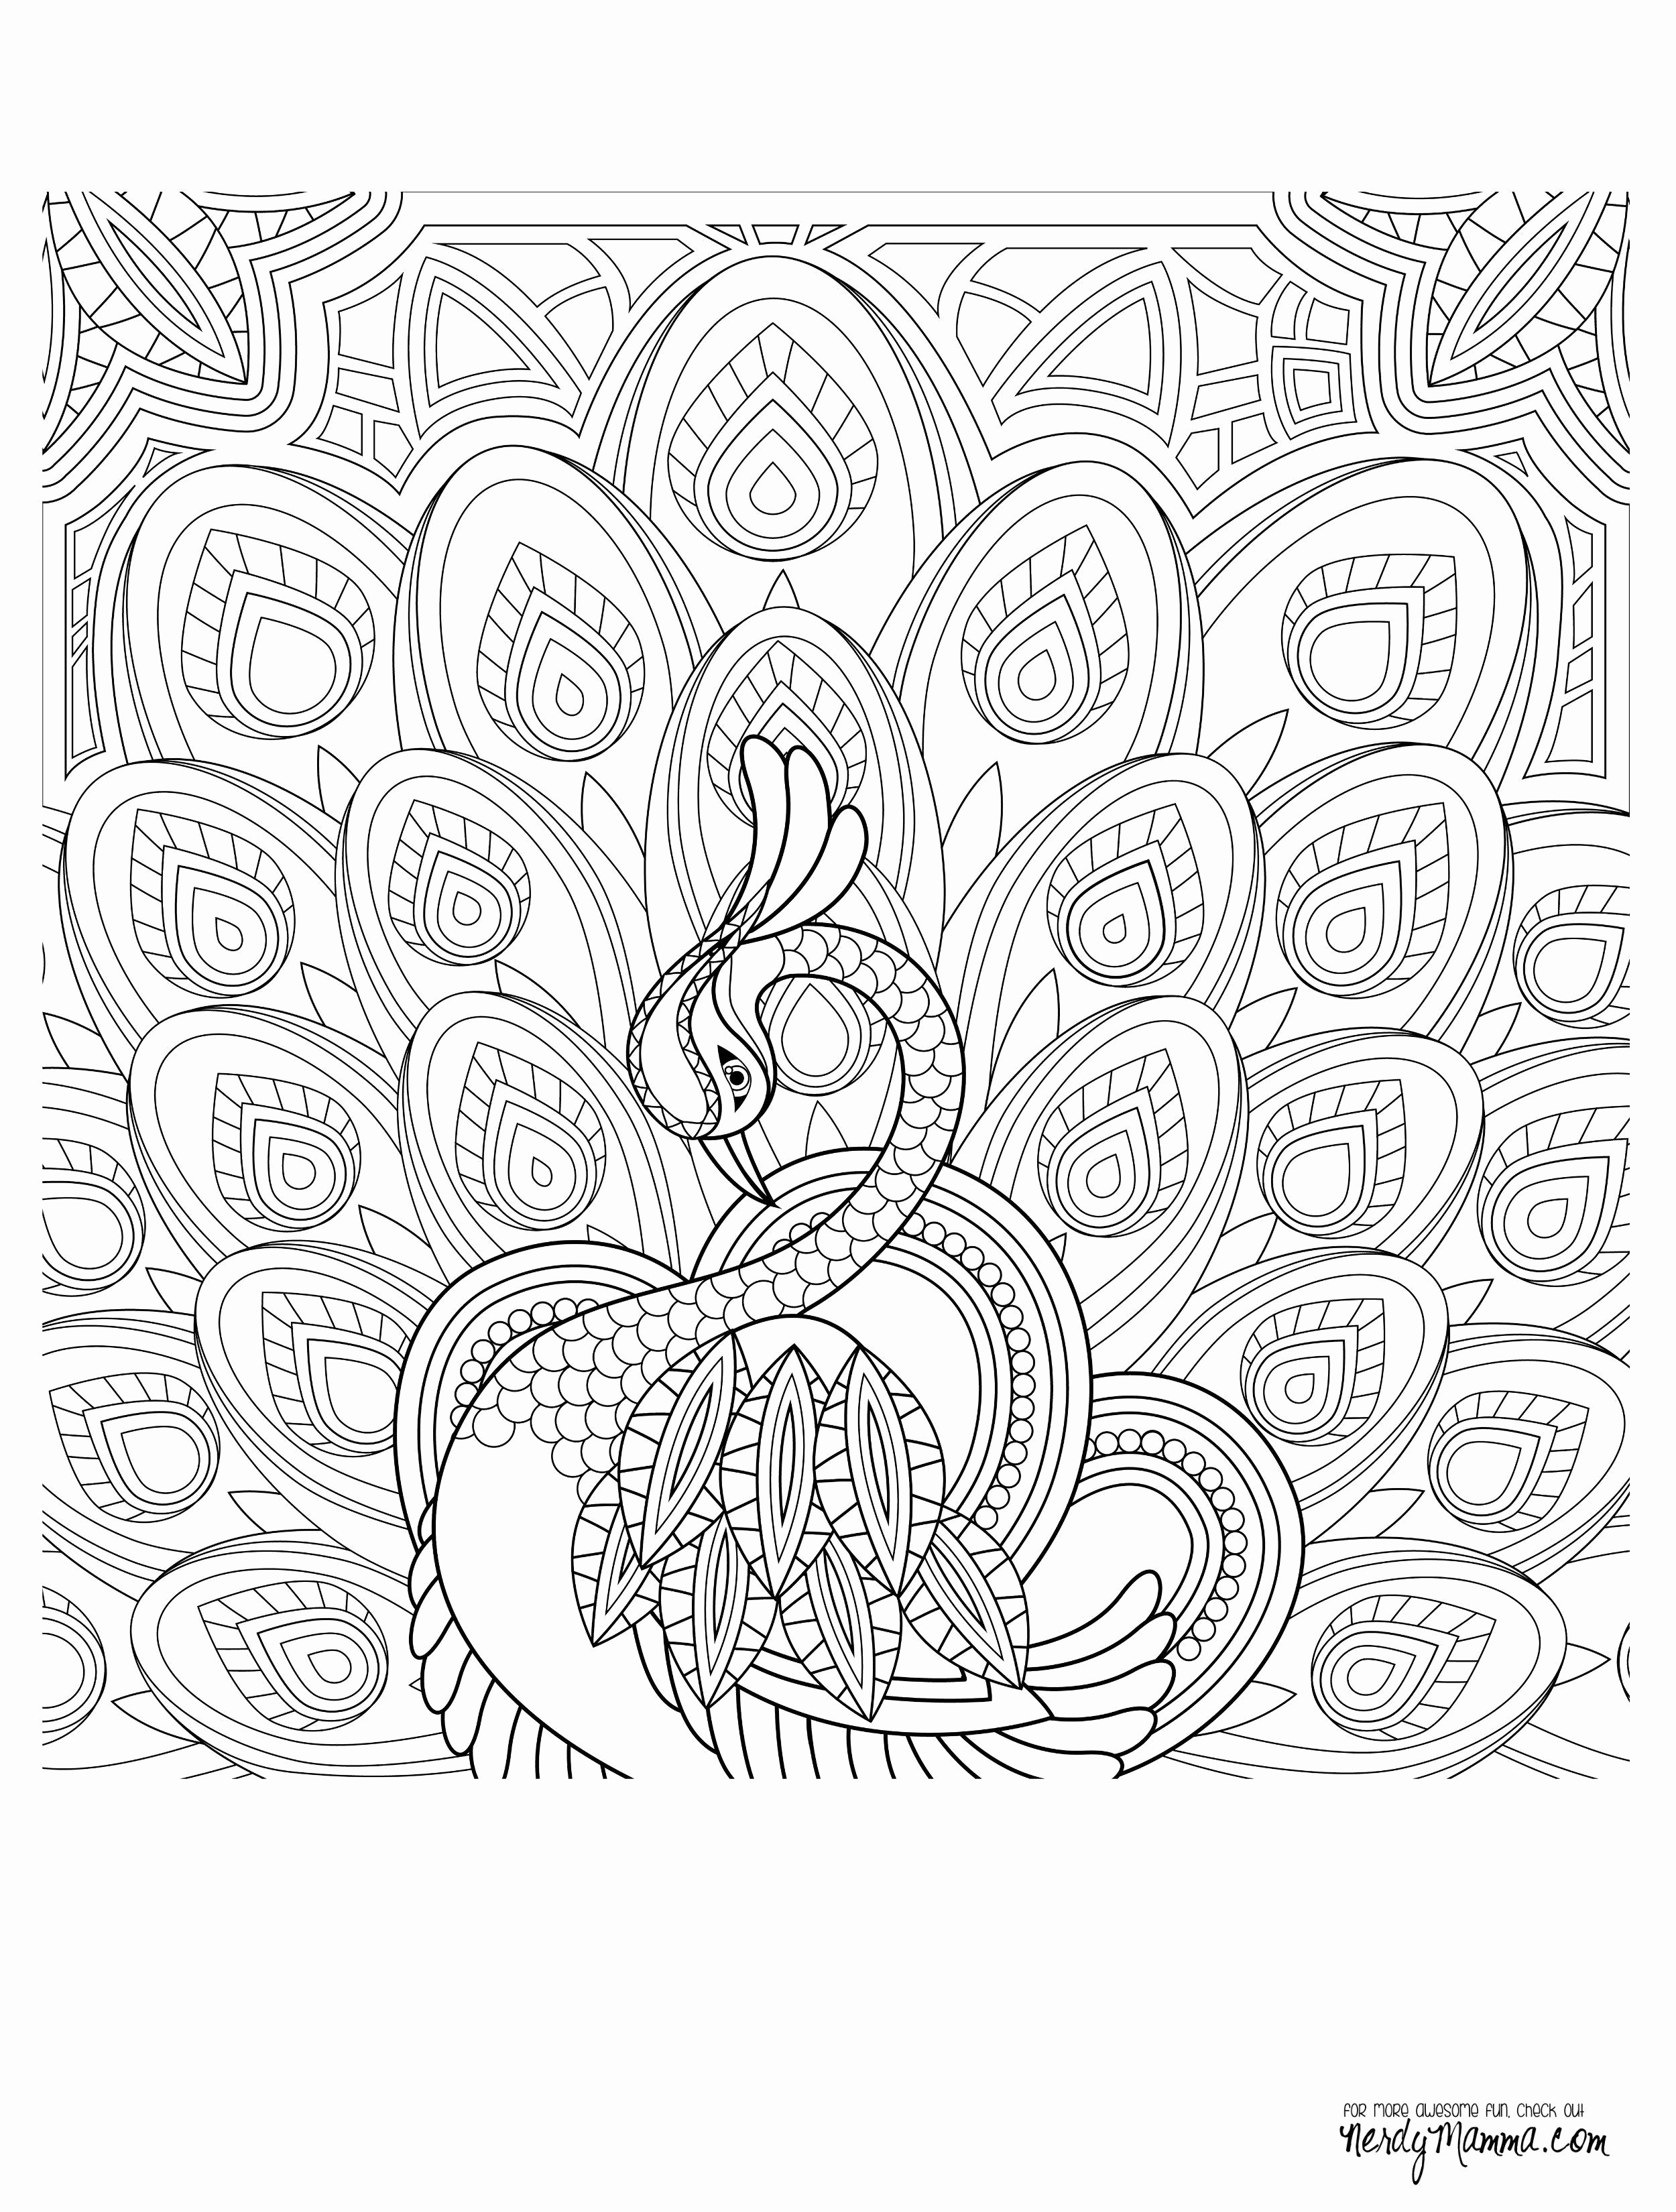 Free Printable Catholic Christmas Coloring Pages With New Ministry To Children A